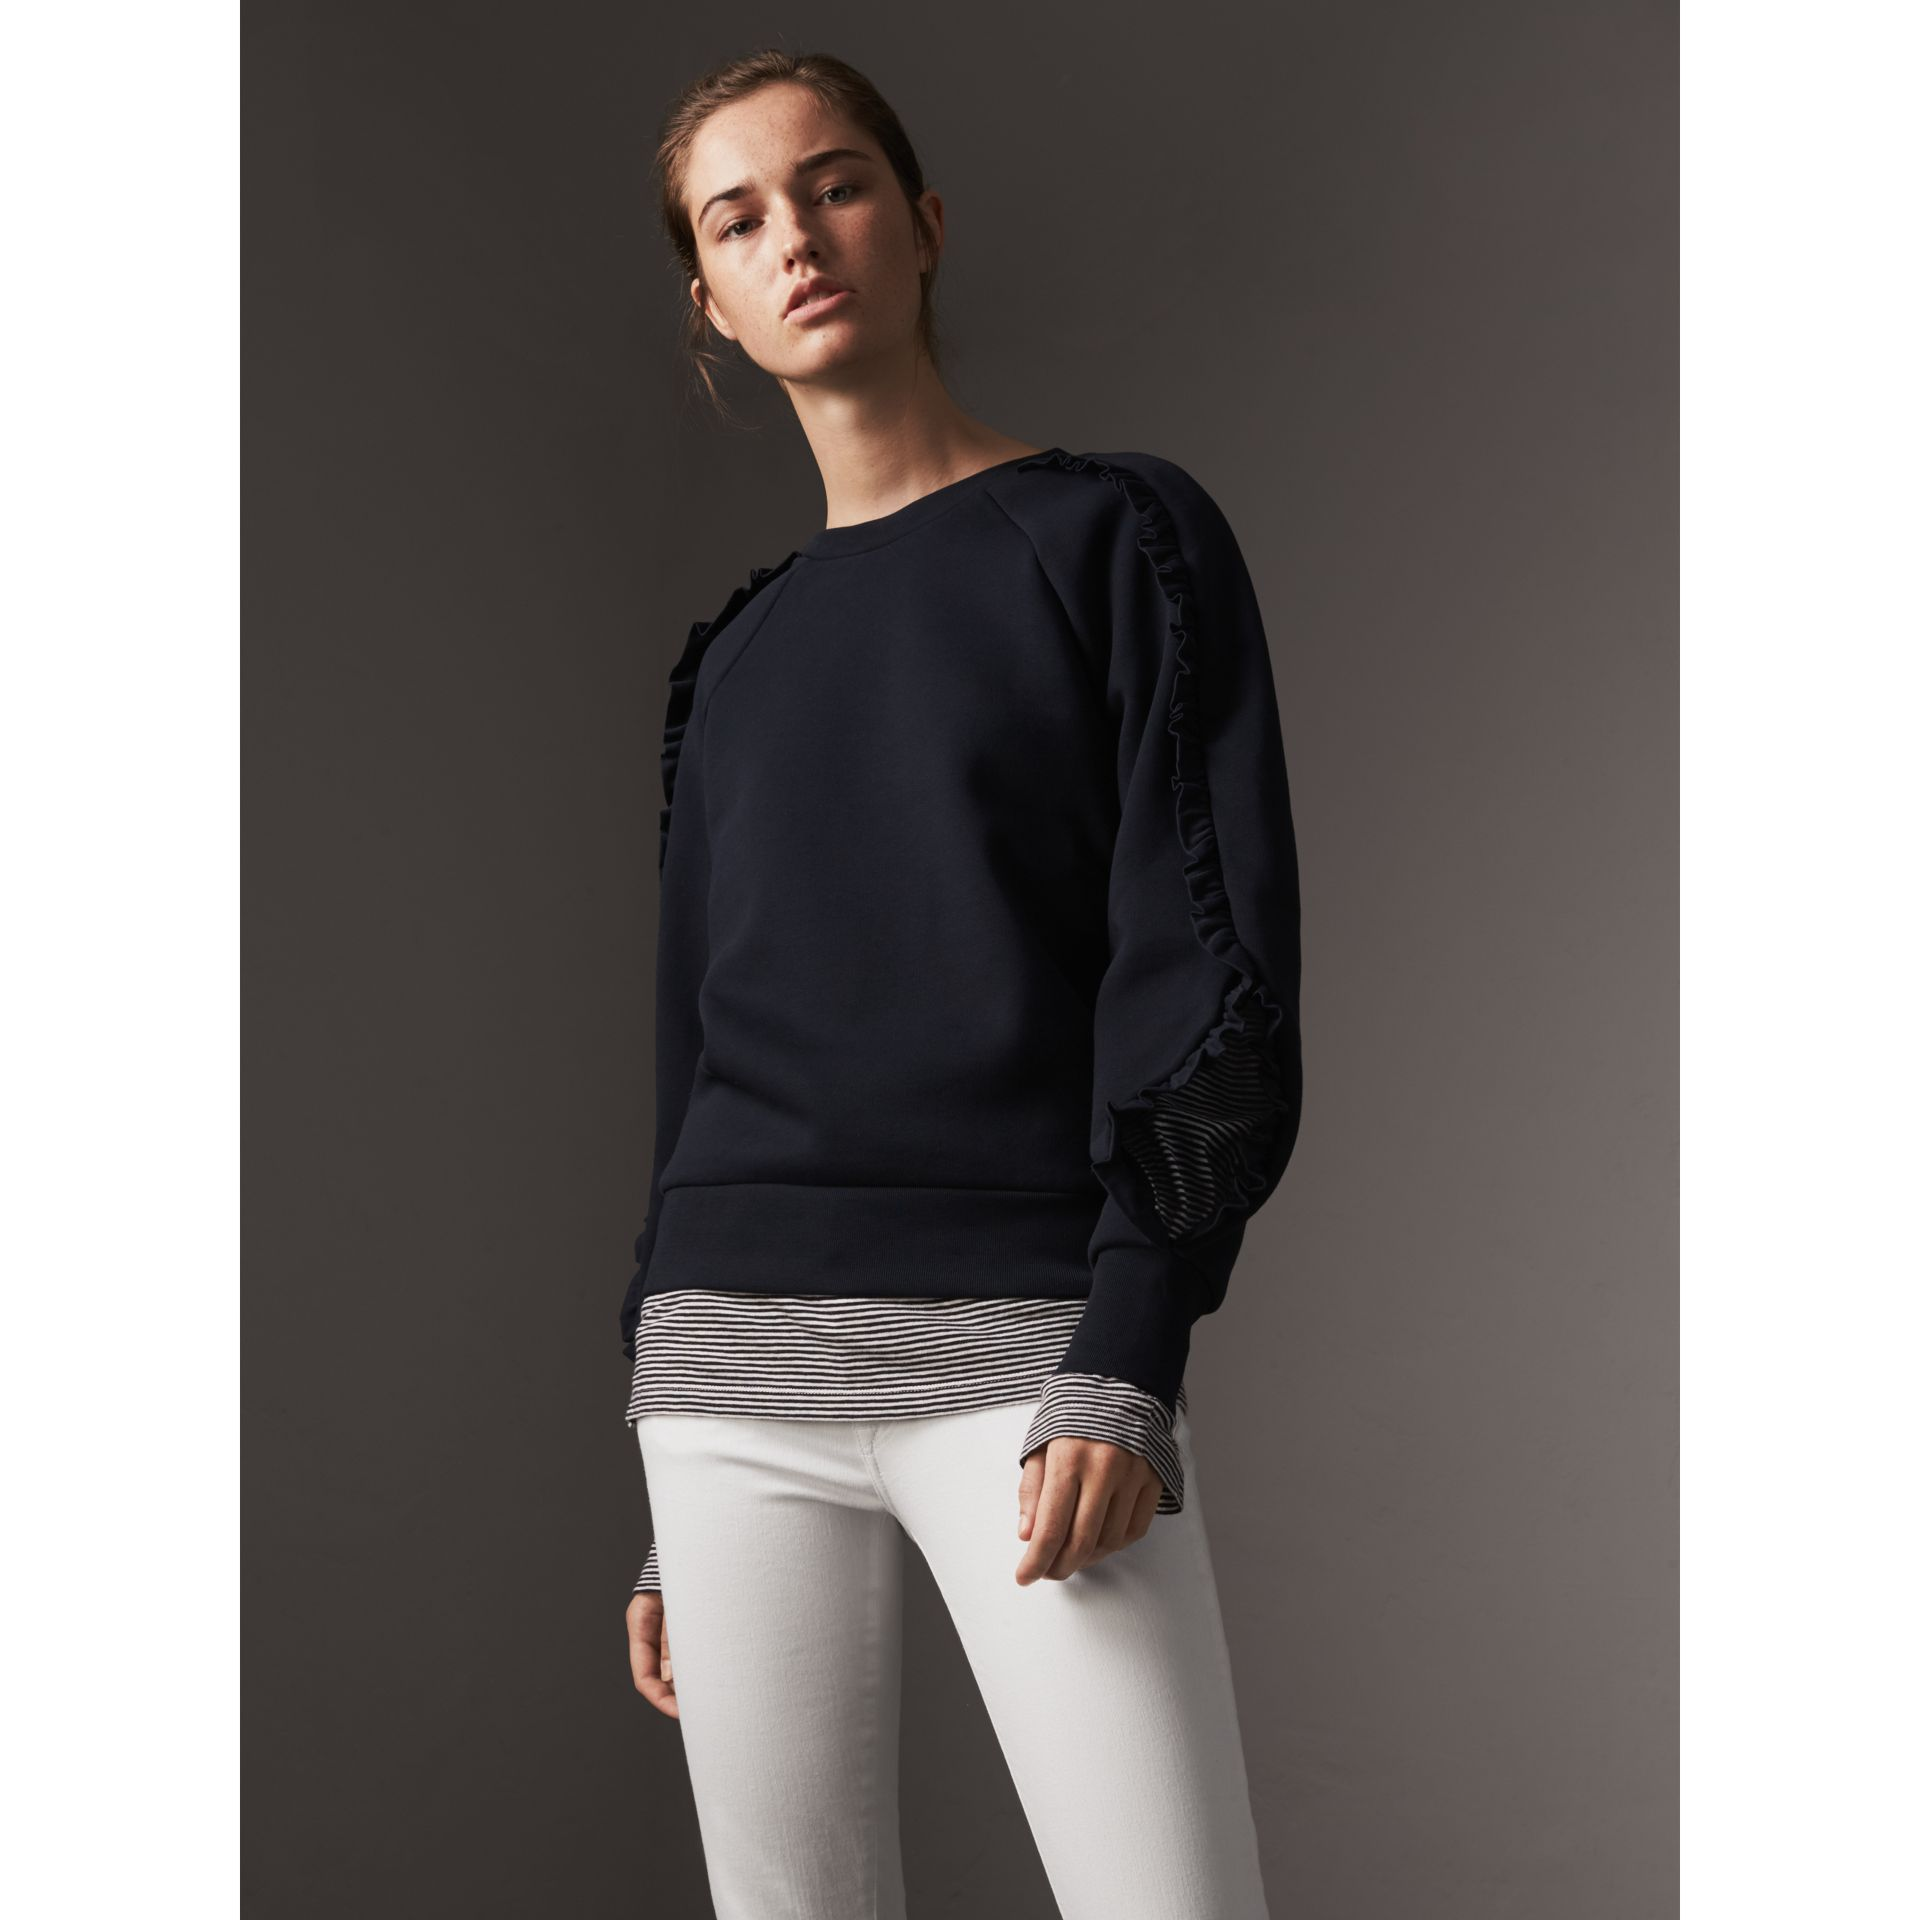 Ruffle-sleeve Sweatshirt in Navy - Women | Burberry - gallery image 1